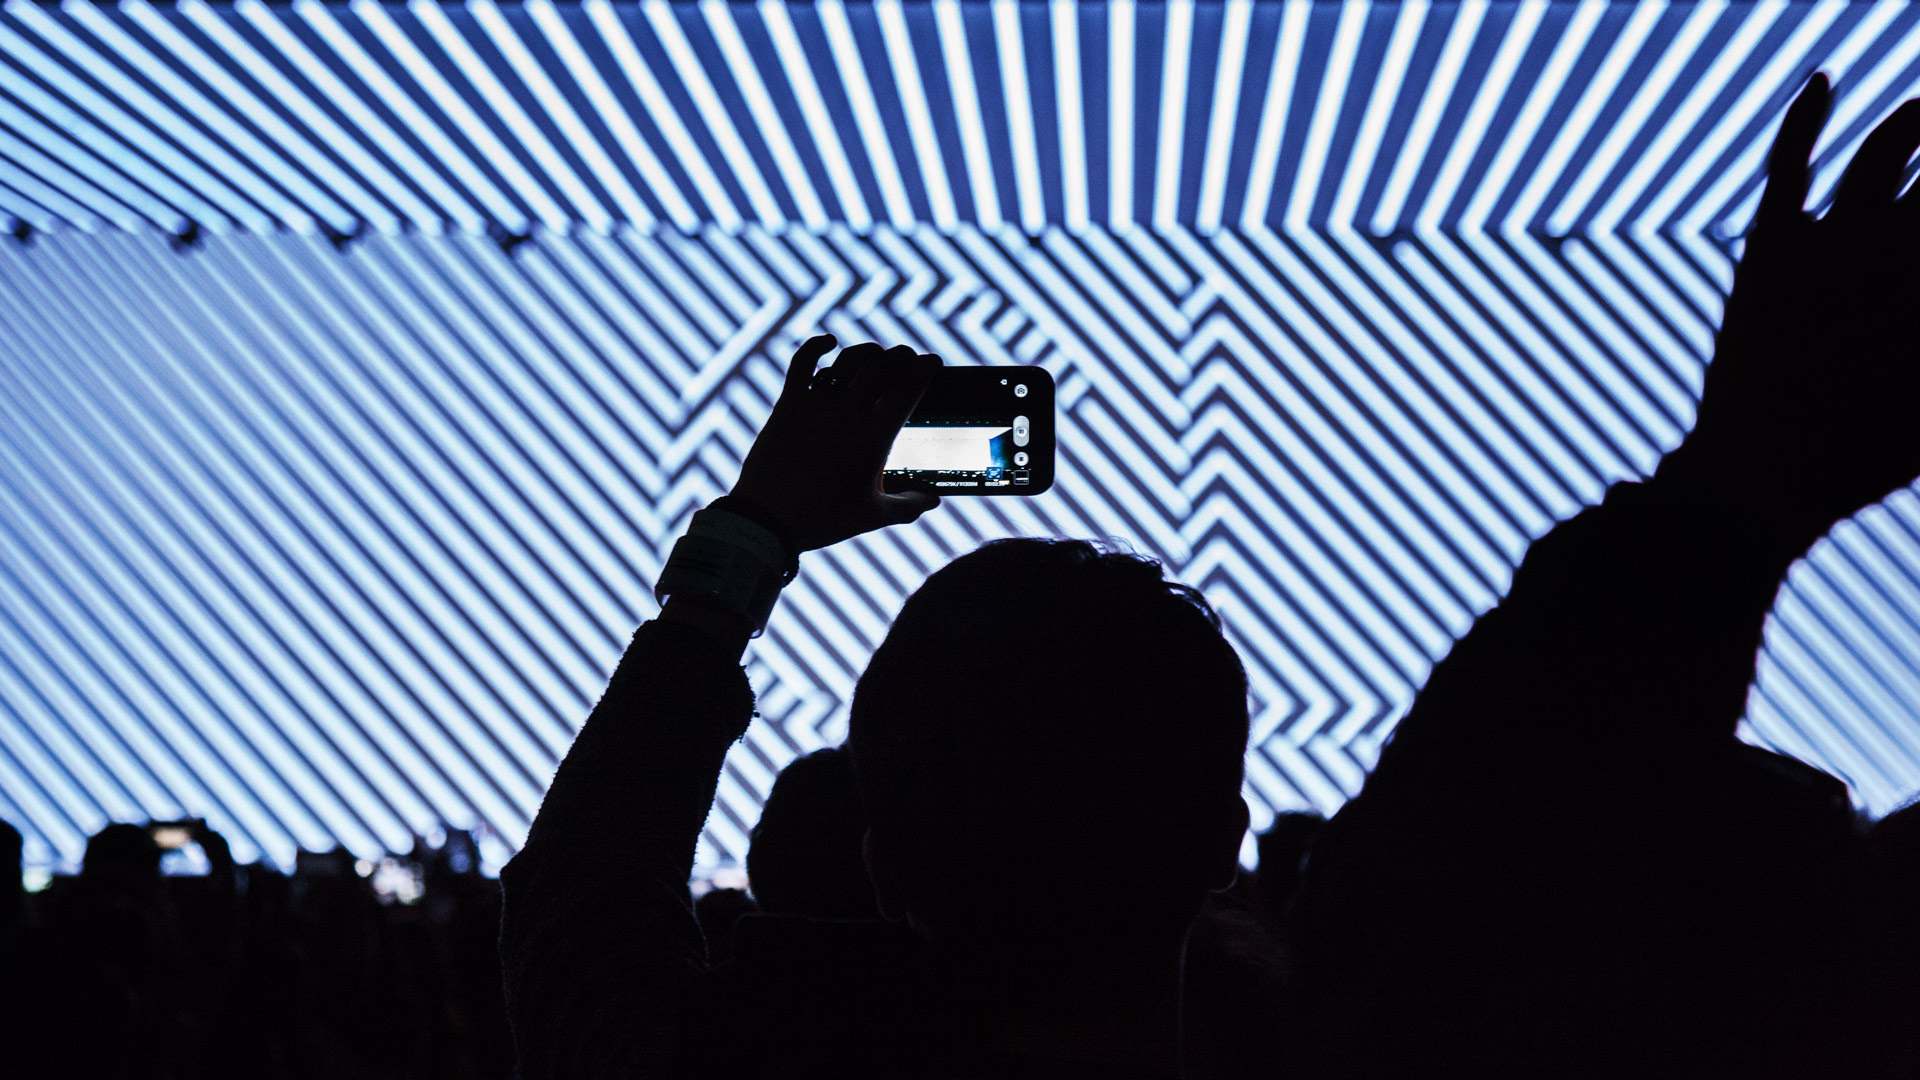 A spectator holds up his smartphone and films the stage.